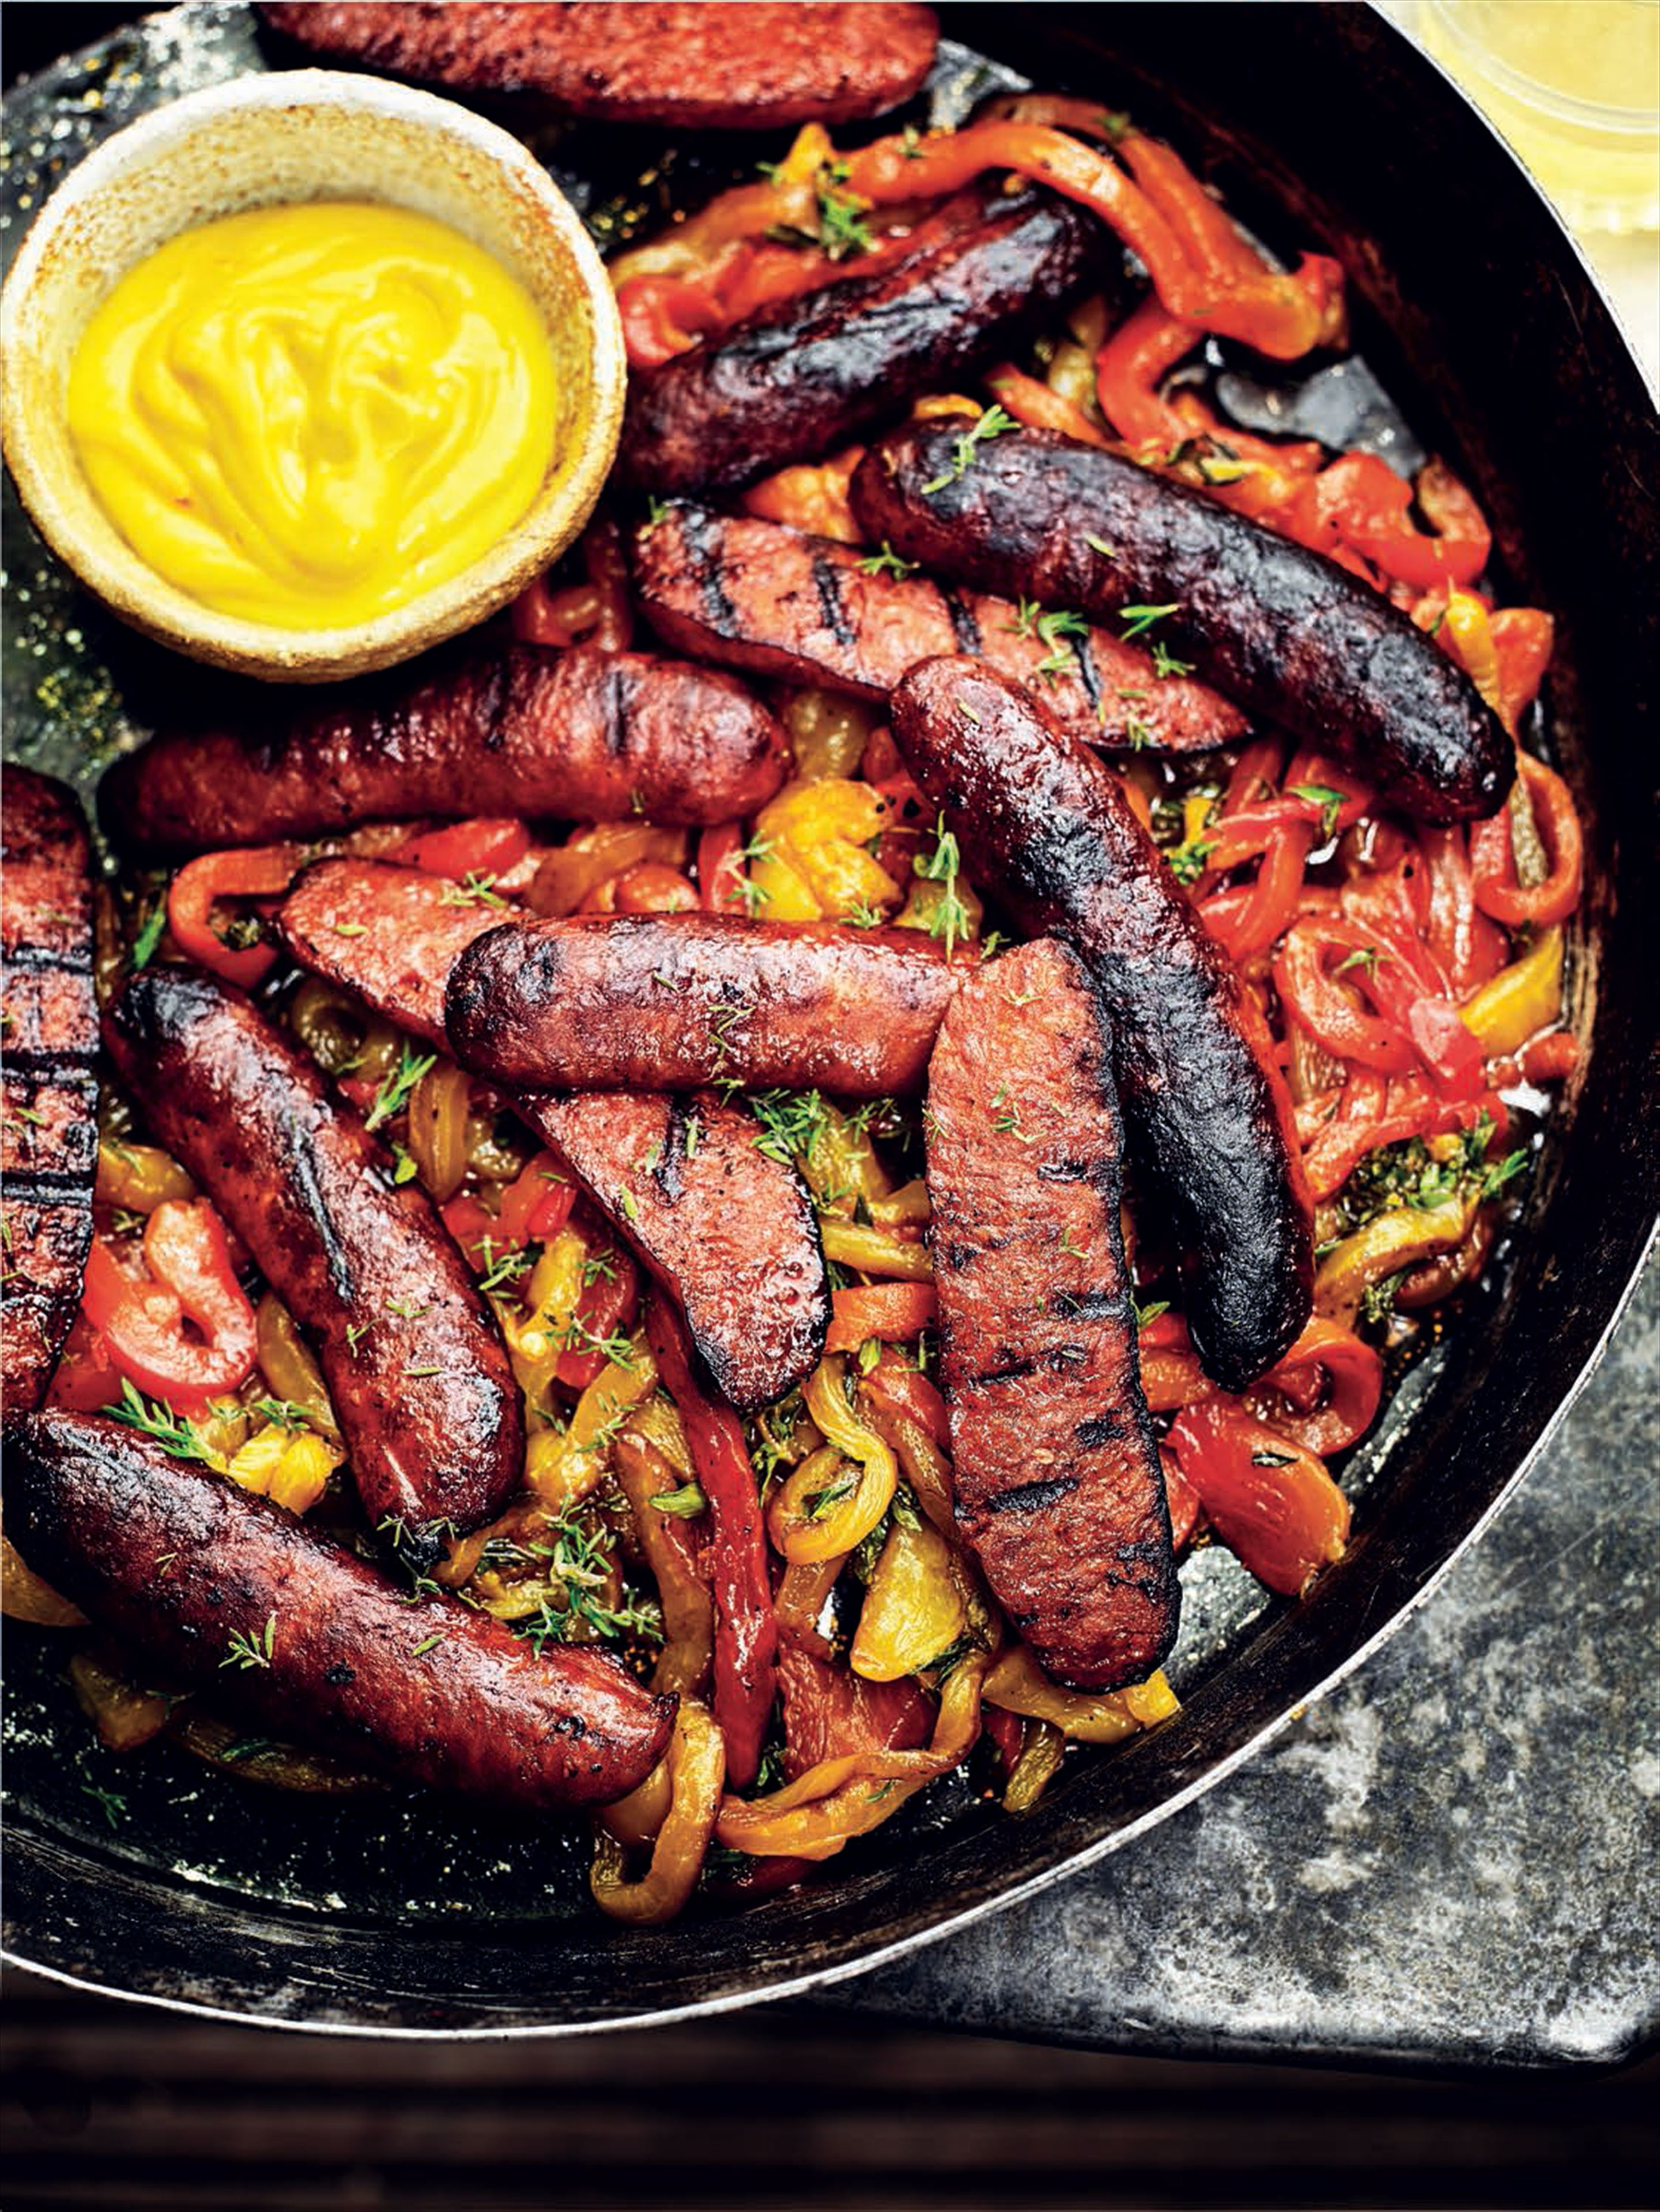 Smoked and grilled chorizo with roasted peppers and saffron alioli